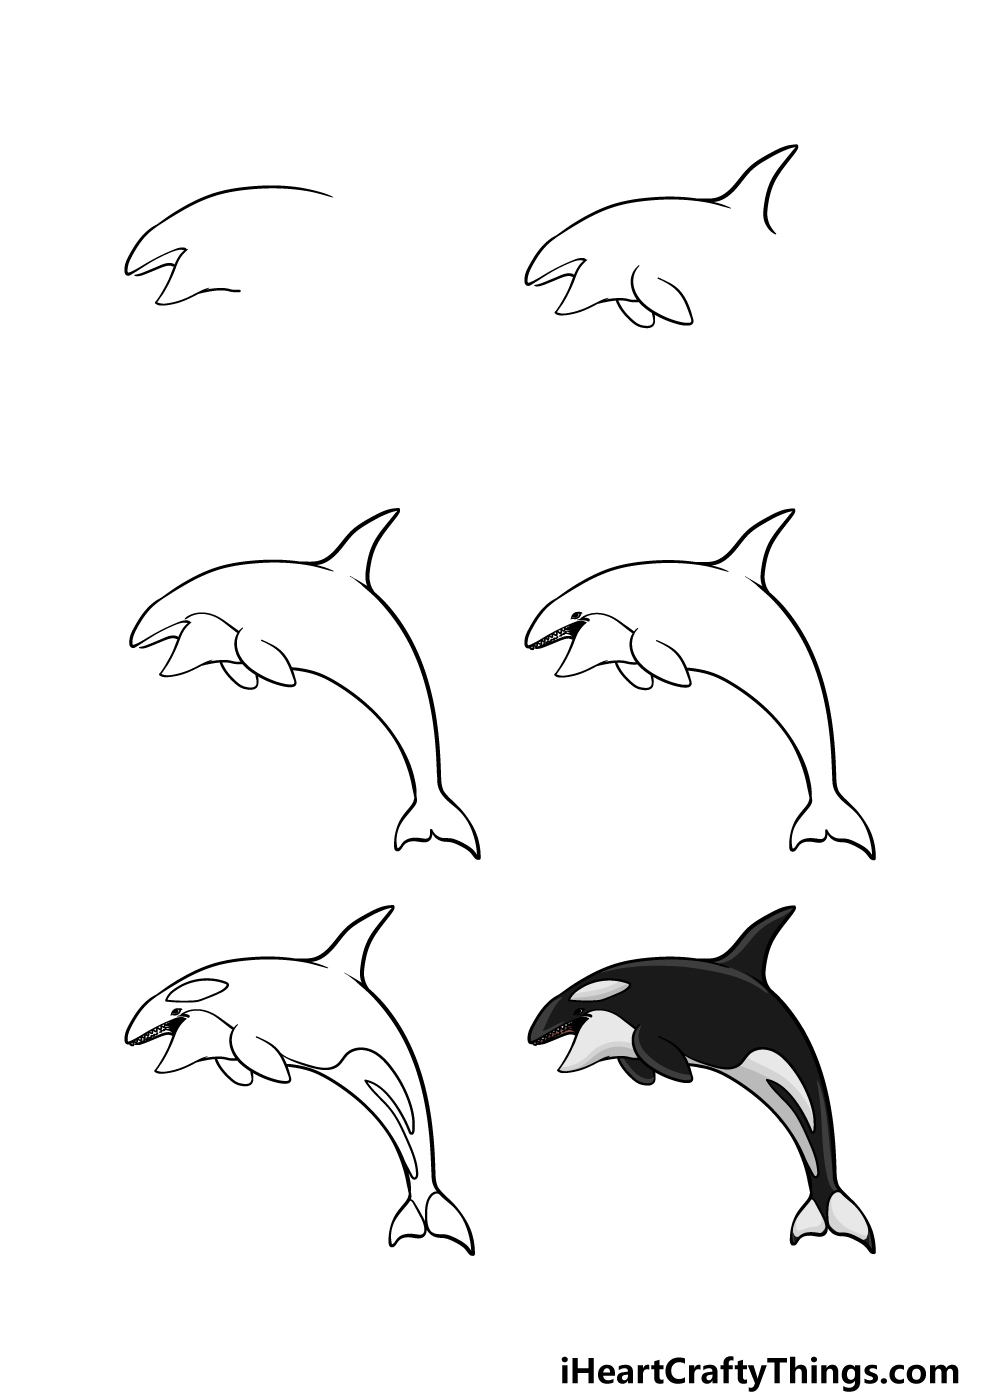 how to draw an Orca in 6 steps